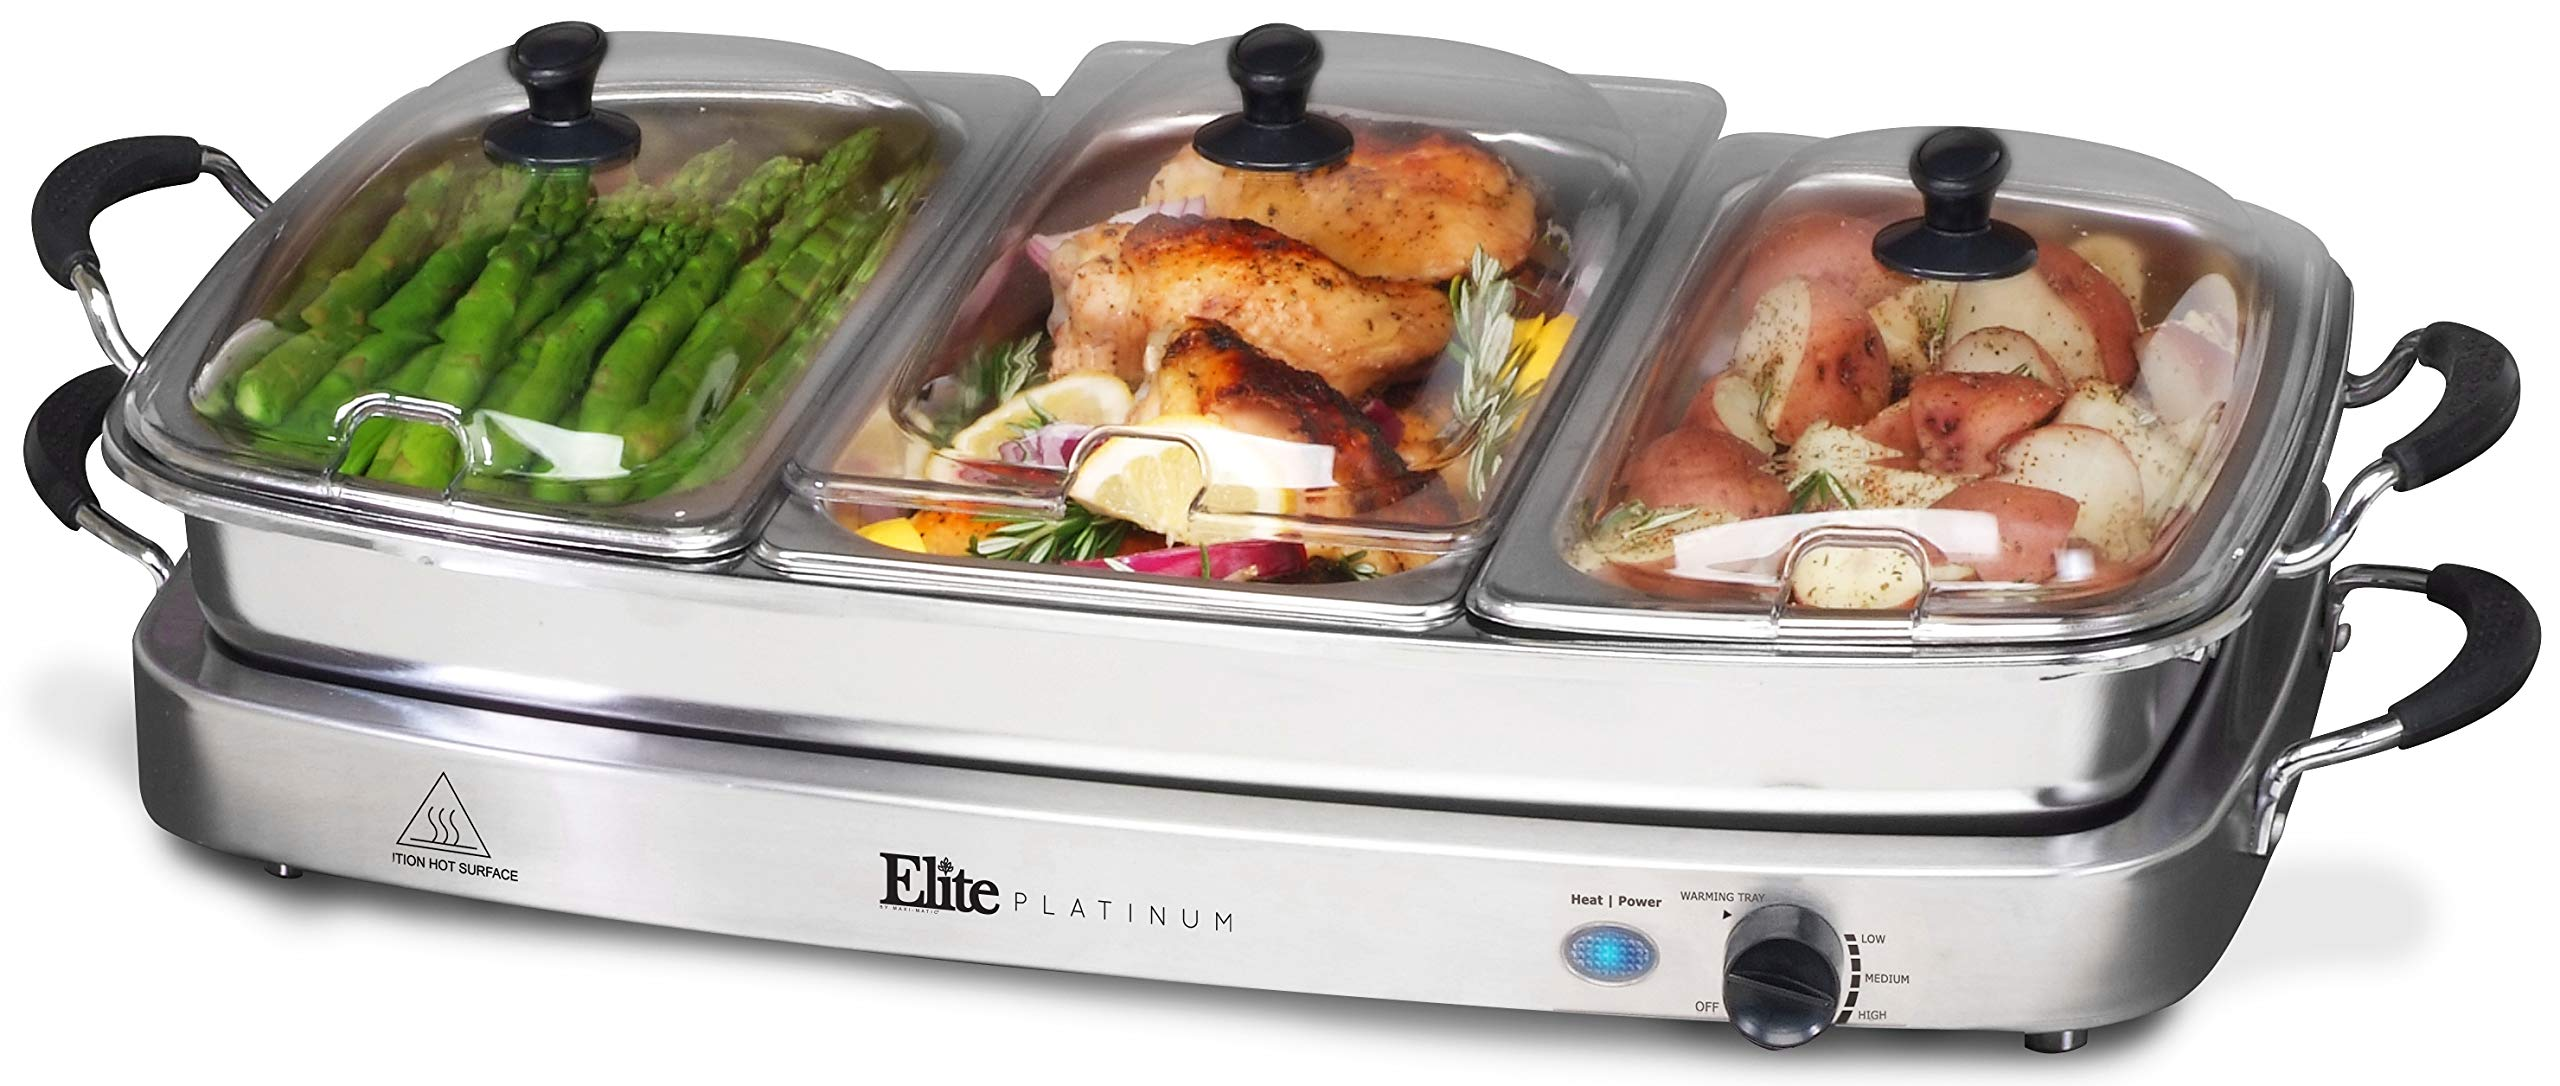 Elite Platinum EWM-9933 Deluxe Triple Buffet Server Food Warmer Party Tray, Oven-Safe Pan, Gravy & Holiday Essentials, 3 x 2.5Qt, Stainless Steel by Maxi-Matic